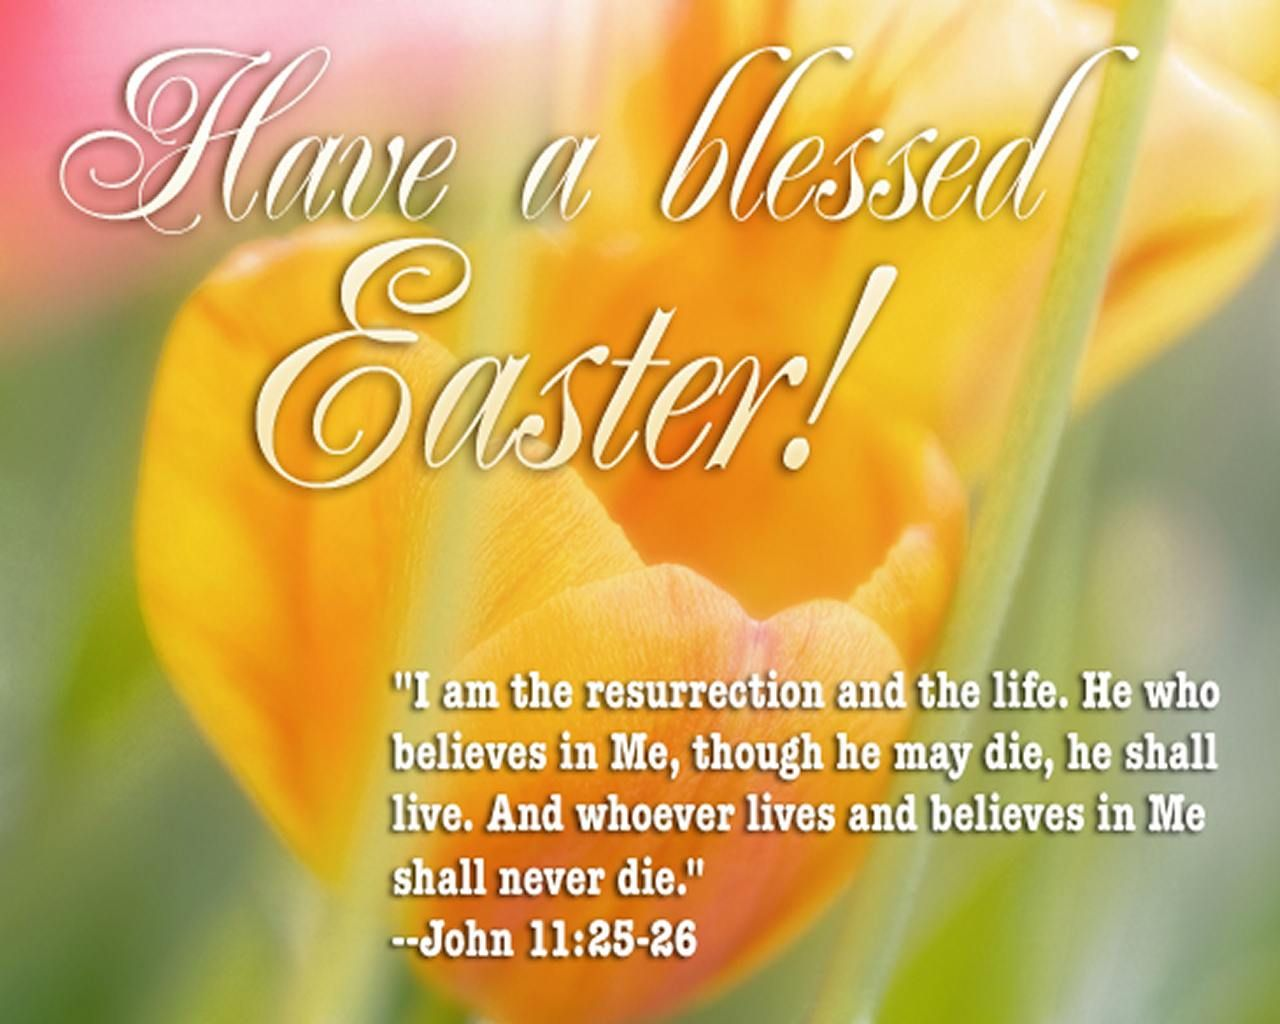 Christian Easter Quotes Easter Weekend Quotes And Saying  Sharing Nice Quotes From The